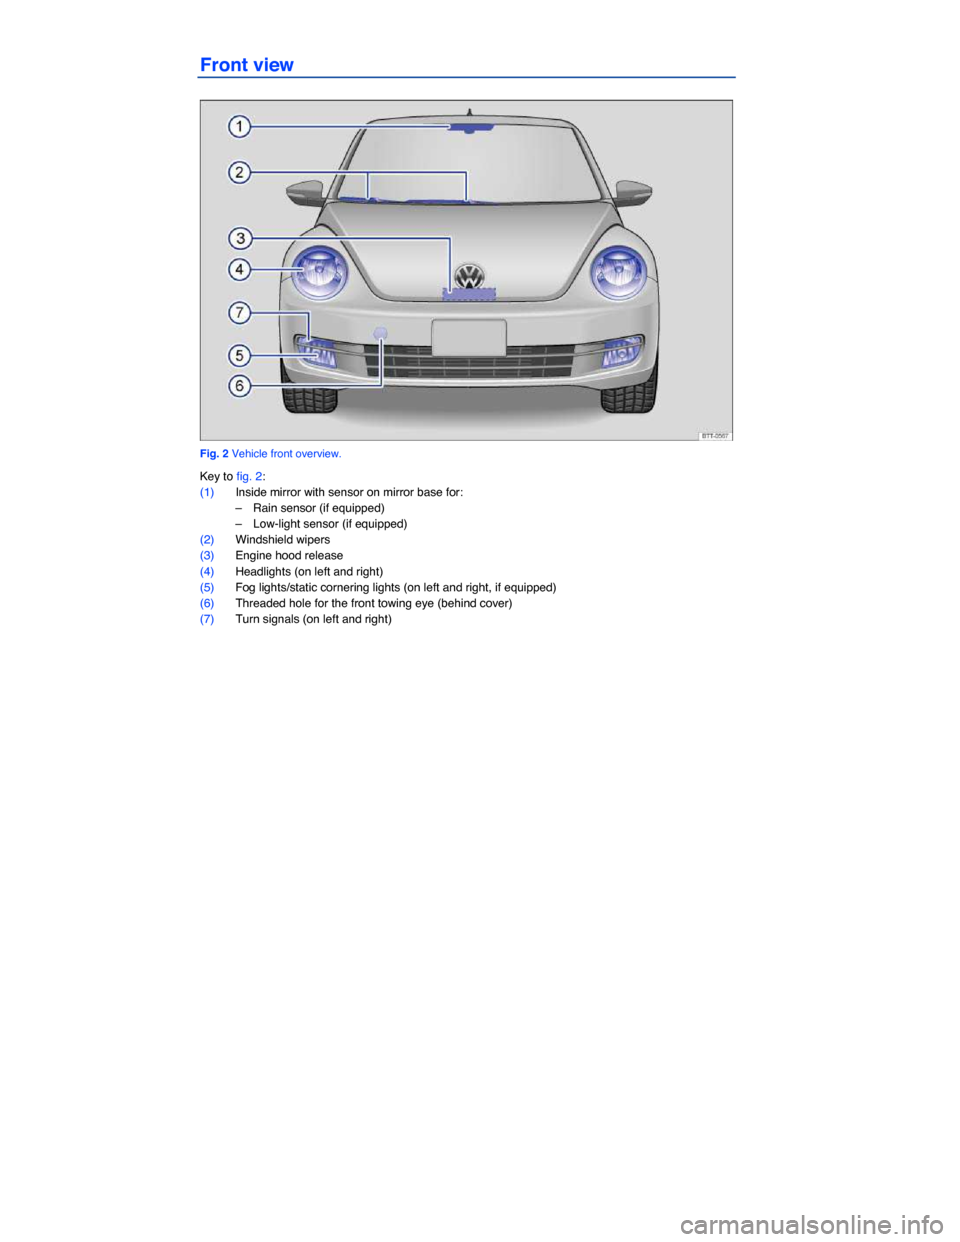 VOLKSWAGEN BEETLE 2015 3.G Owners Manual   Front view    Fig. 2 Vehicle front overview.  Key to fig. 2:  (1) Inside mirror with sensor on mirror base for:  –  Rain sensor (if equipped)   –  Low-light sensor (if equipped)   (2) Windshield